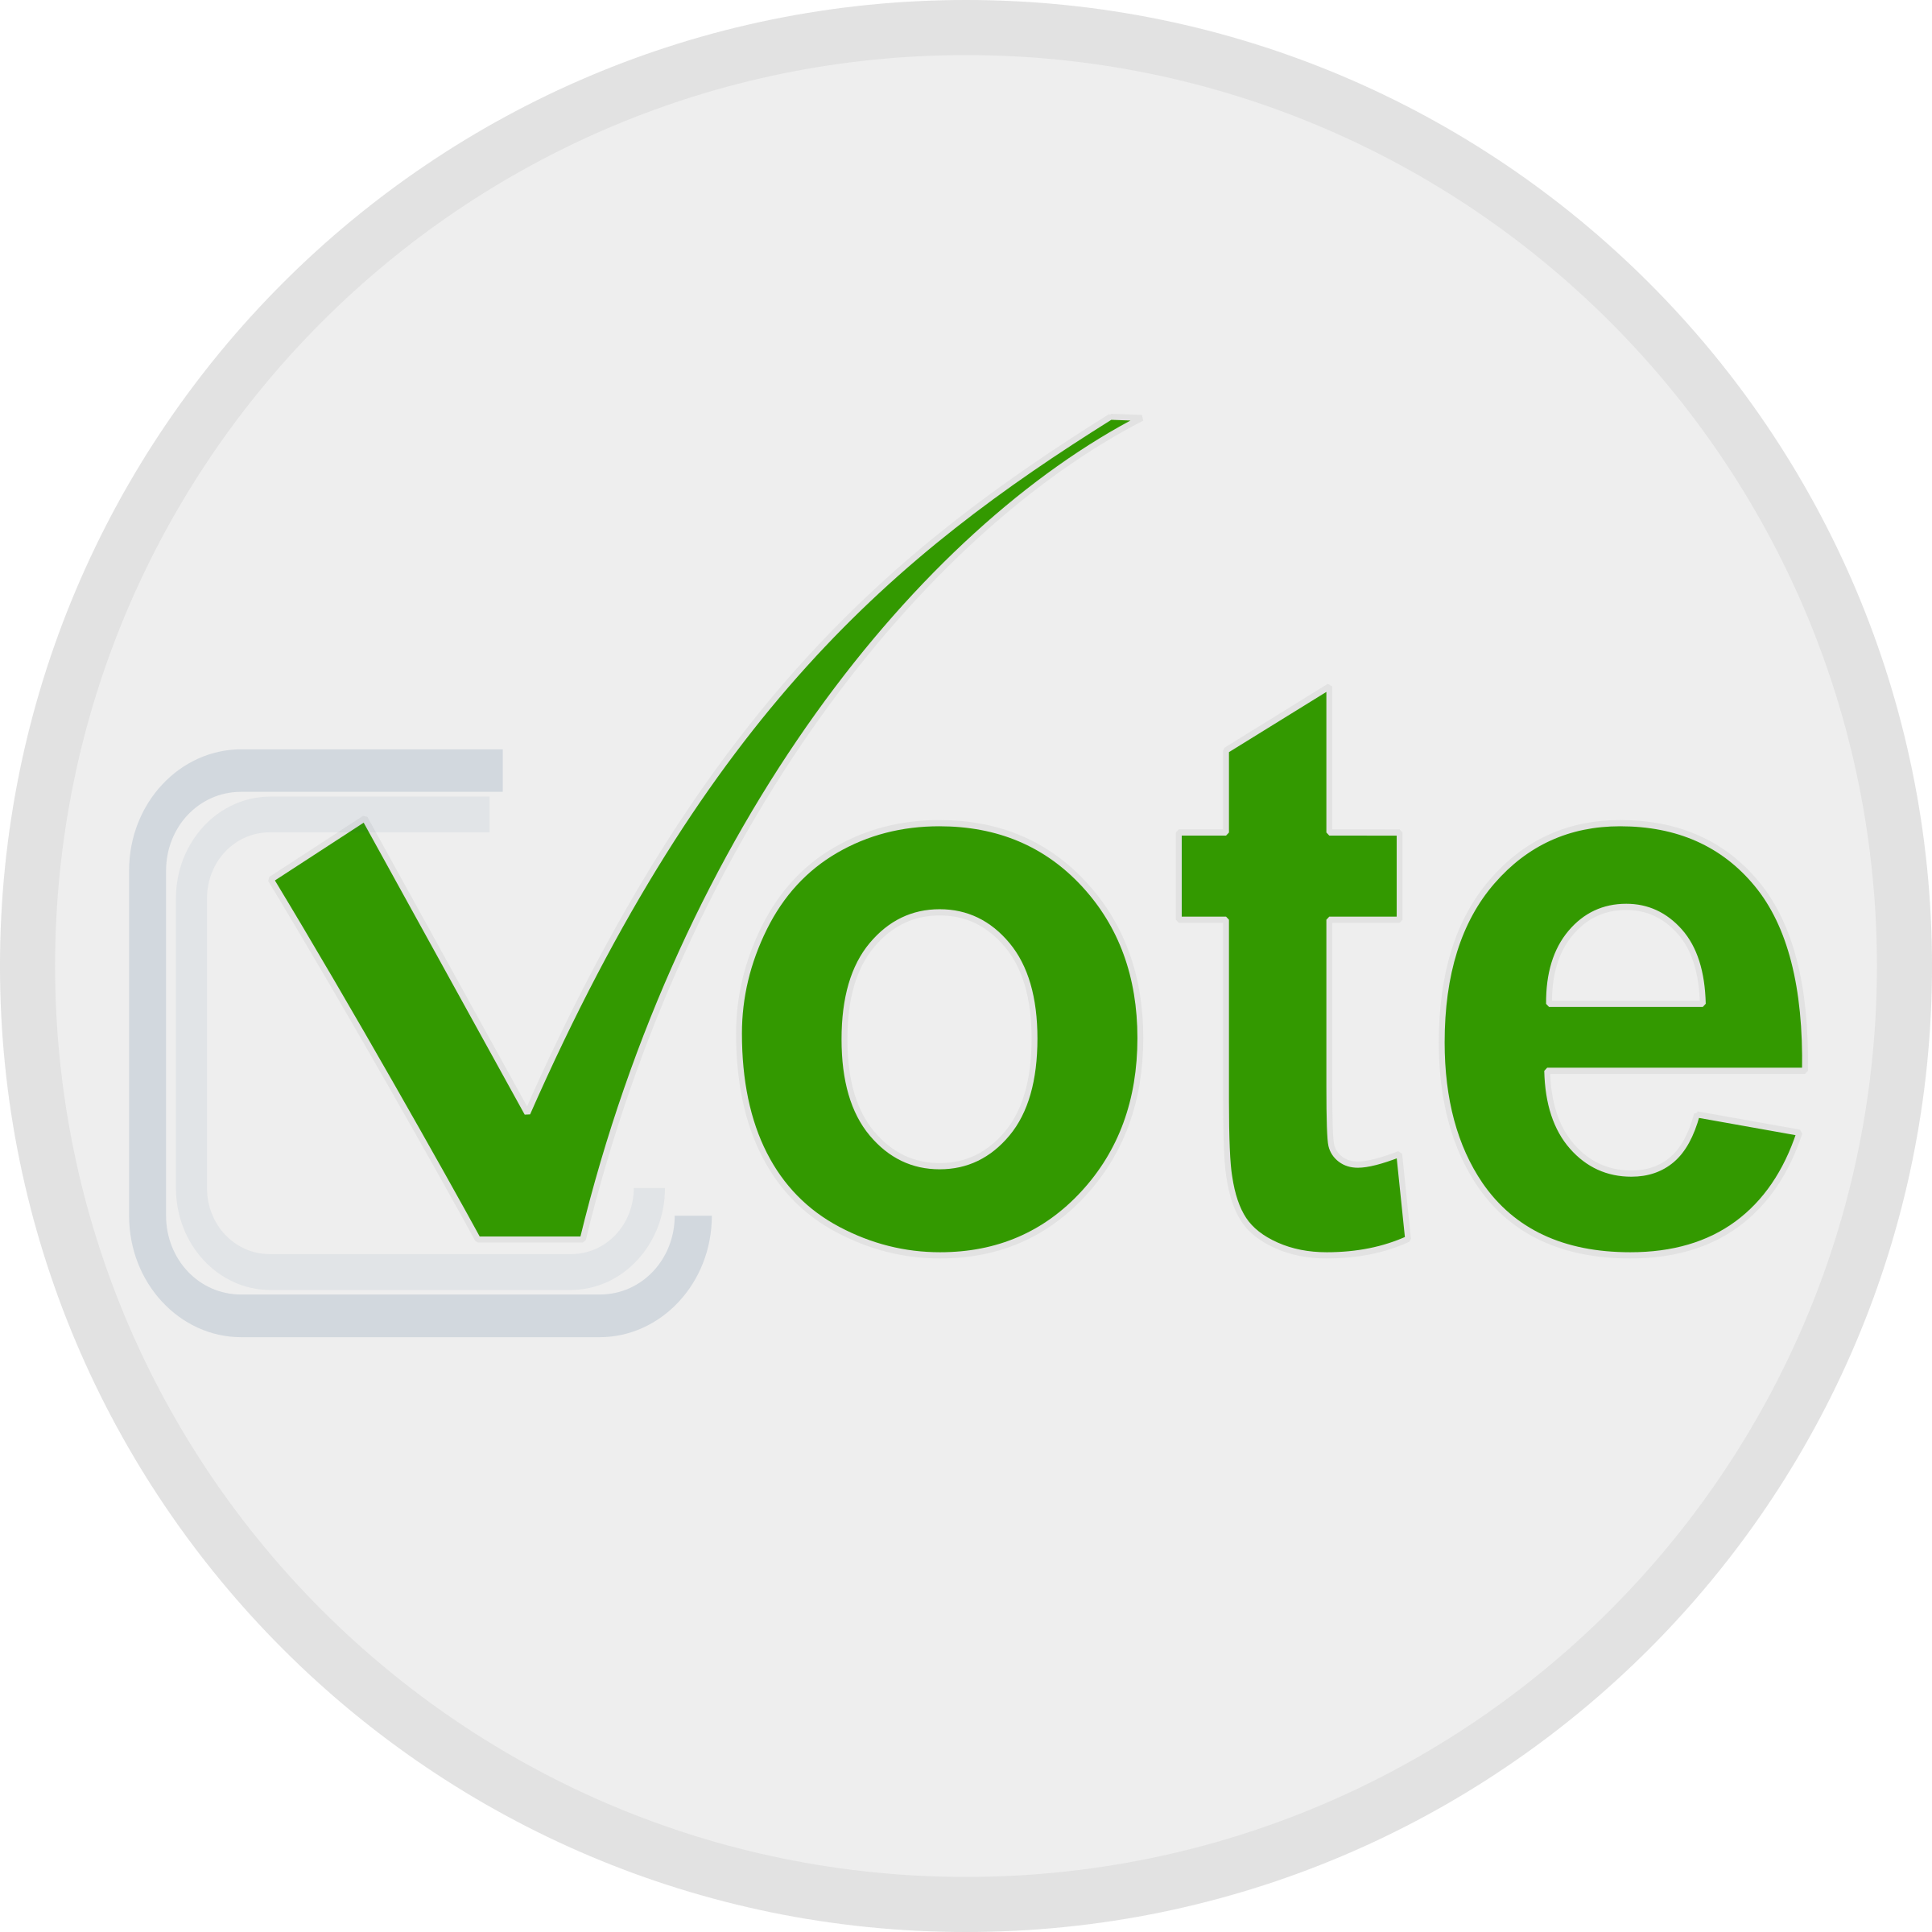 Vote icon by netalloy